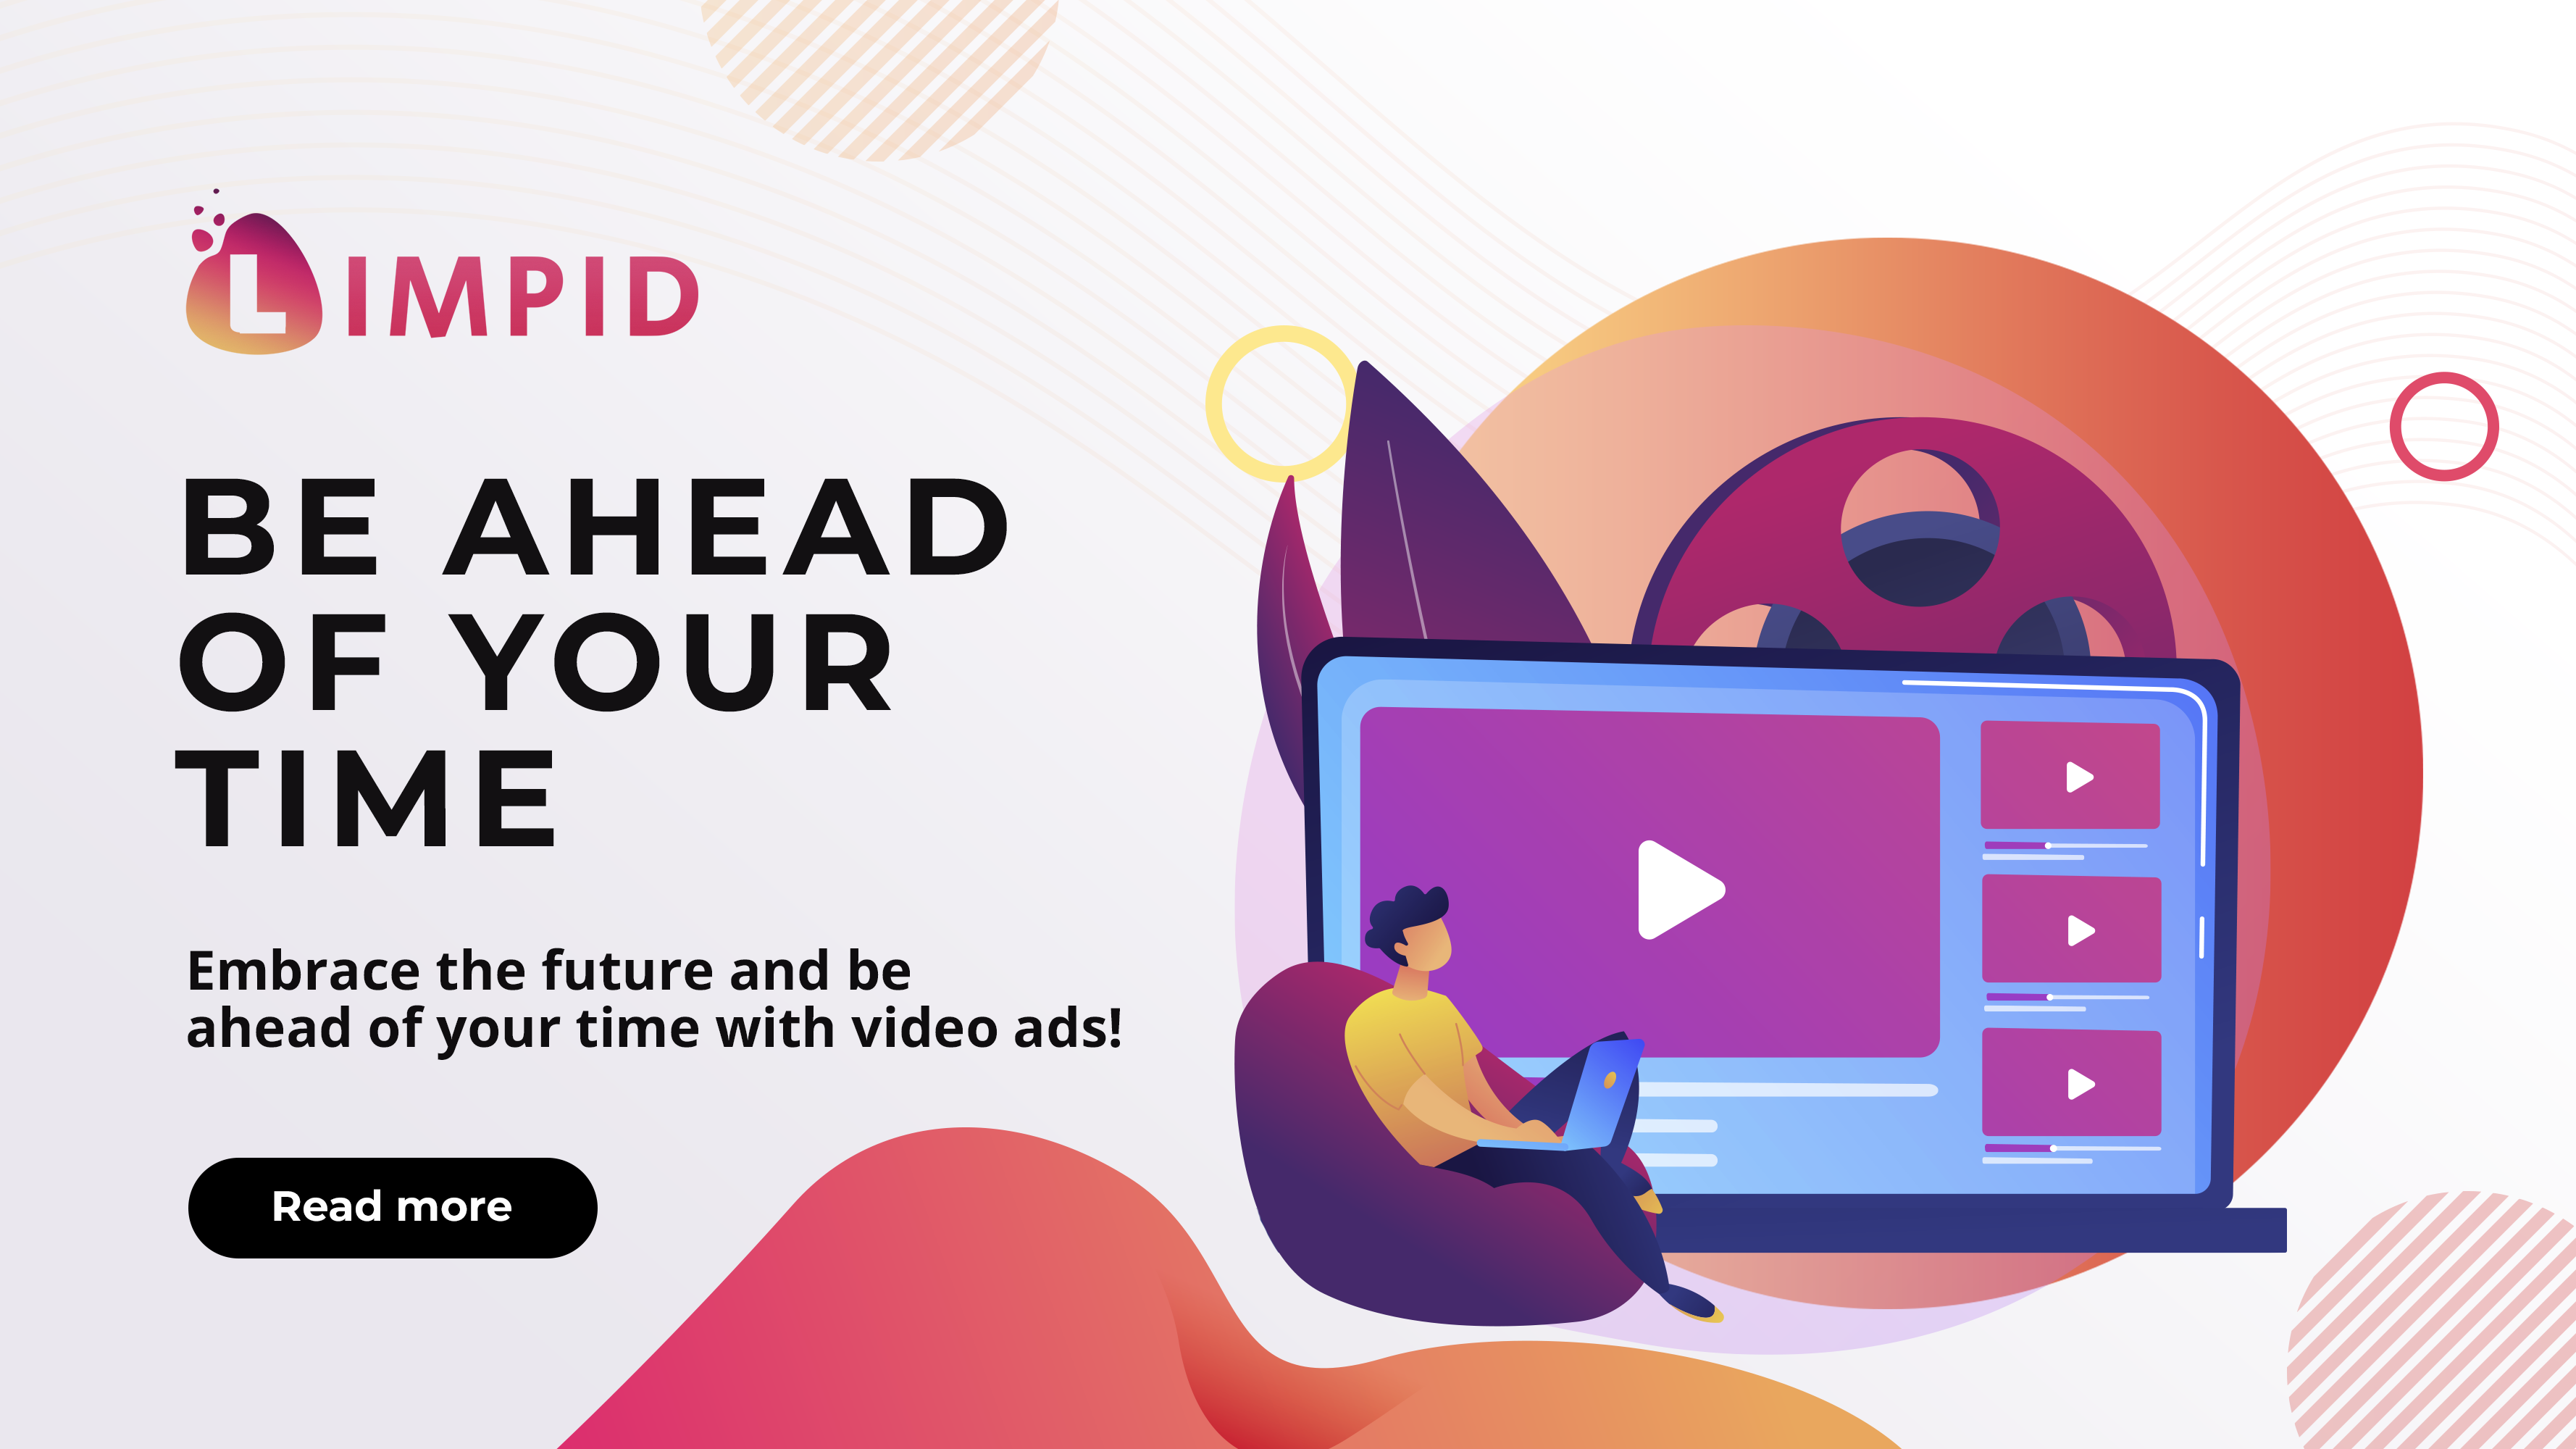 Embrace the future and be ahead of your time with video ads